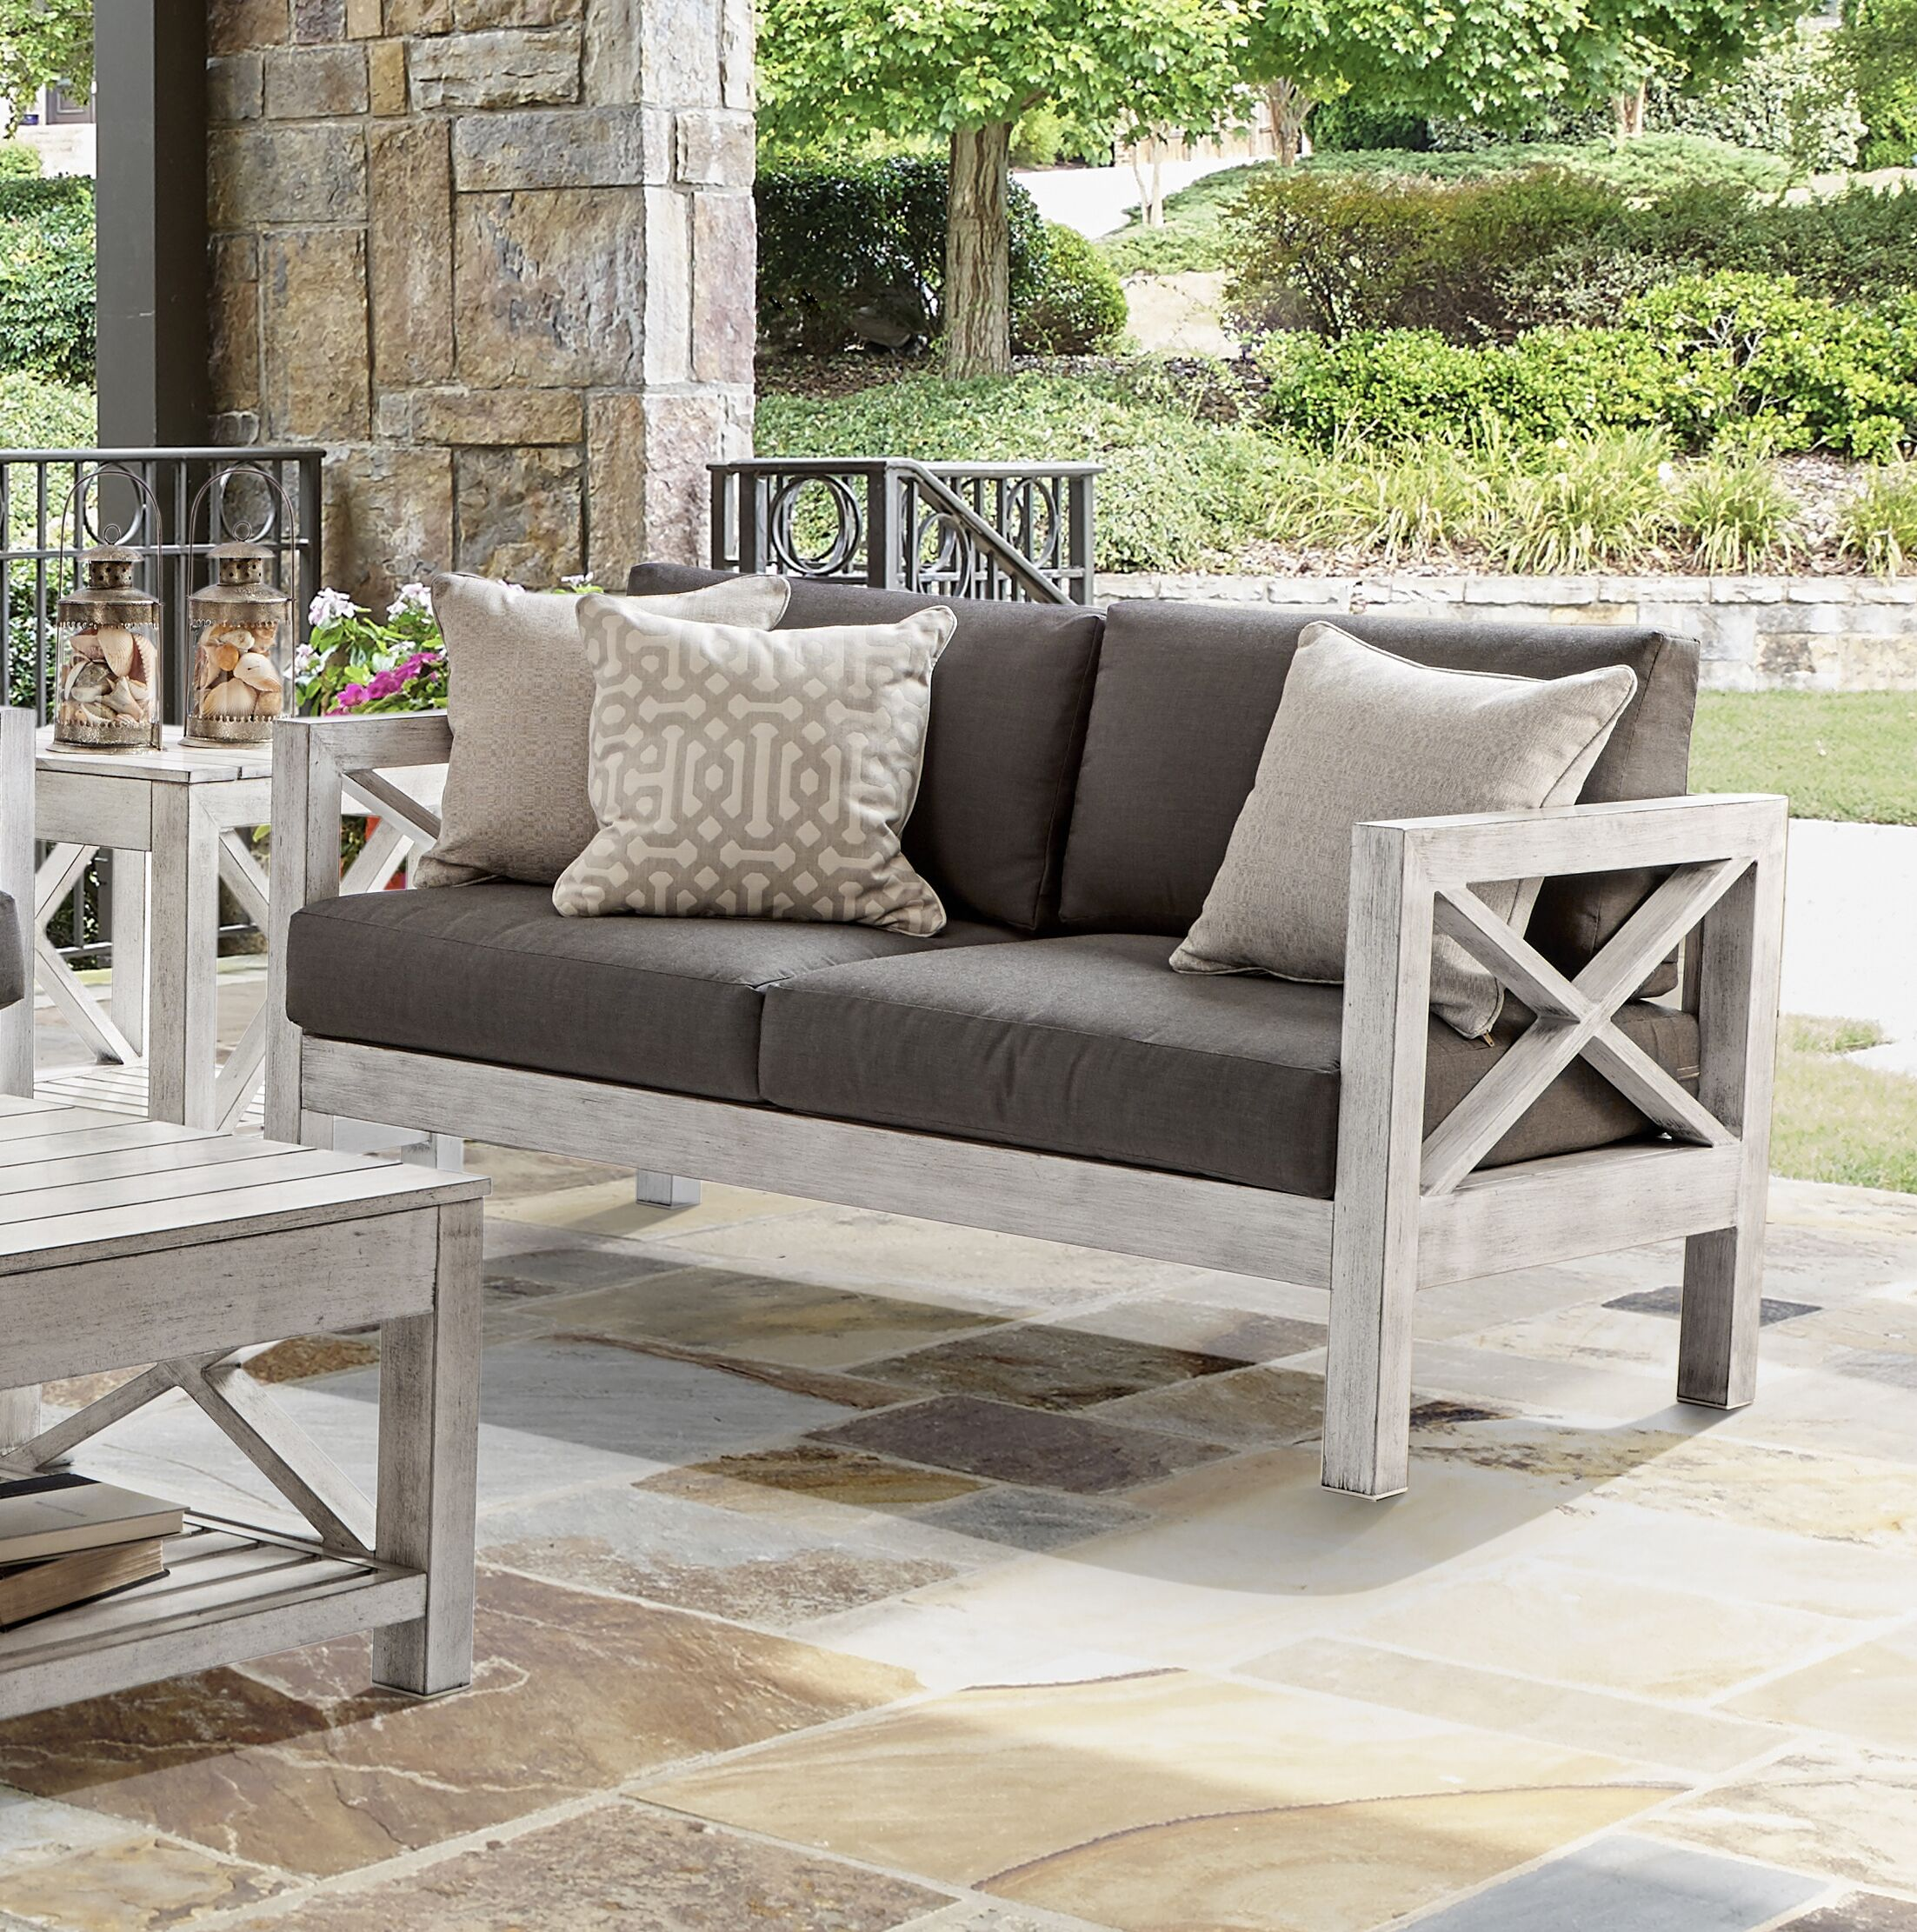 Barden Patio Loveseat with Sunbrella Cushions Cushion Color: Canvas Khaki